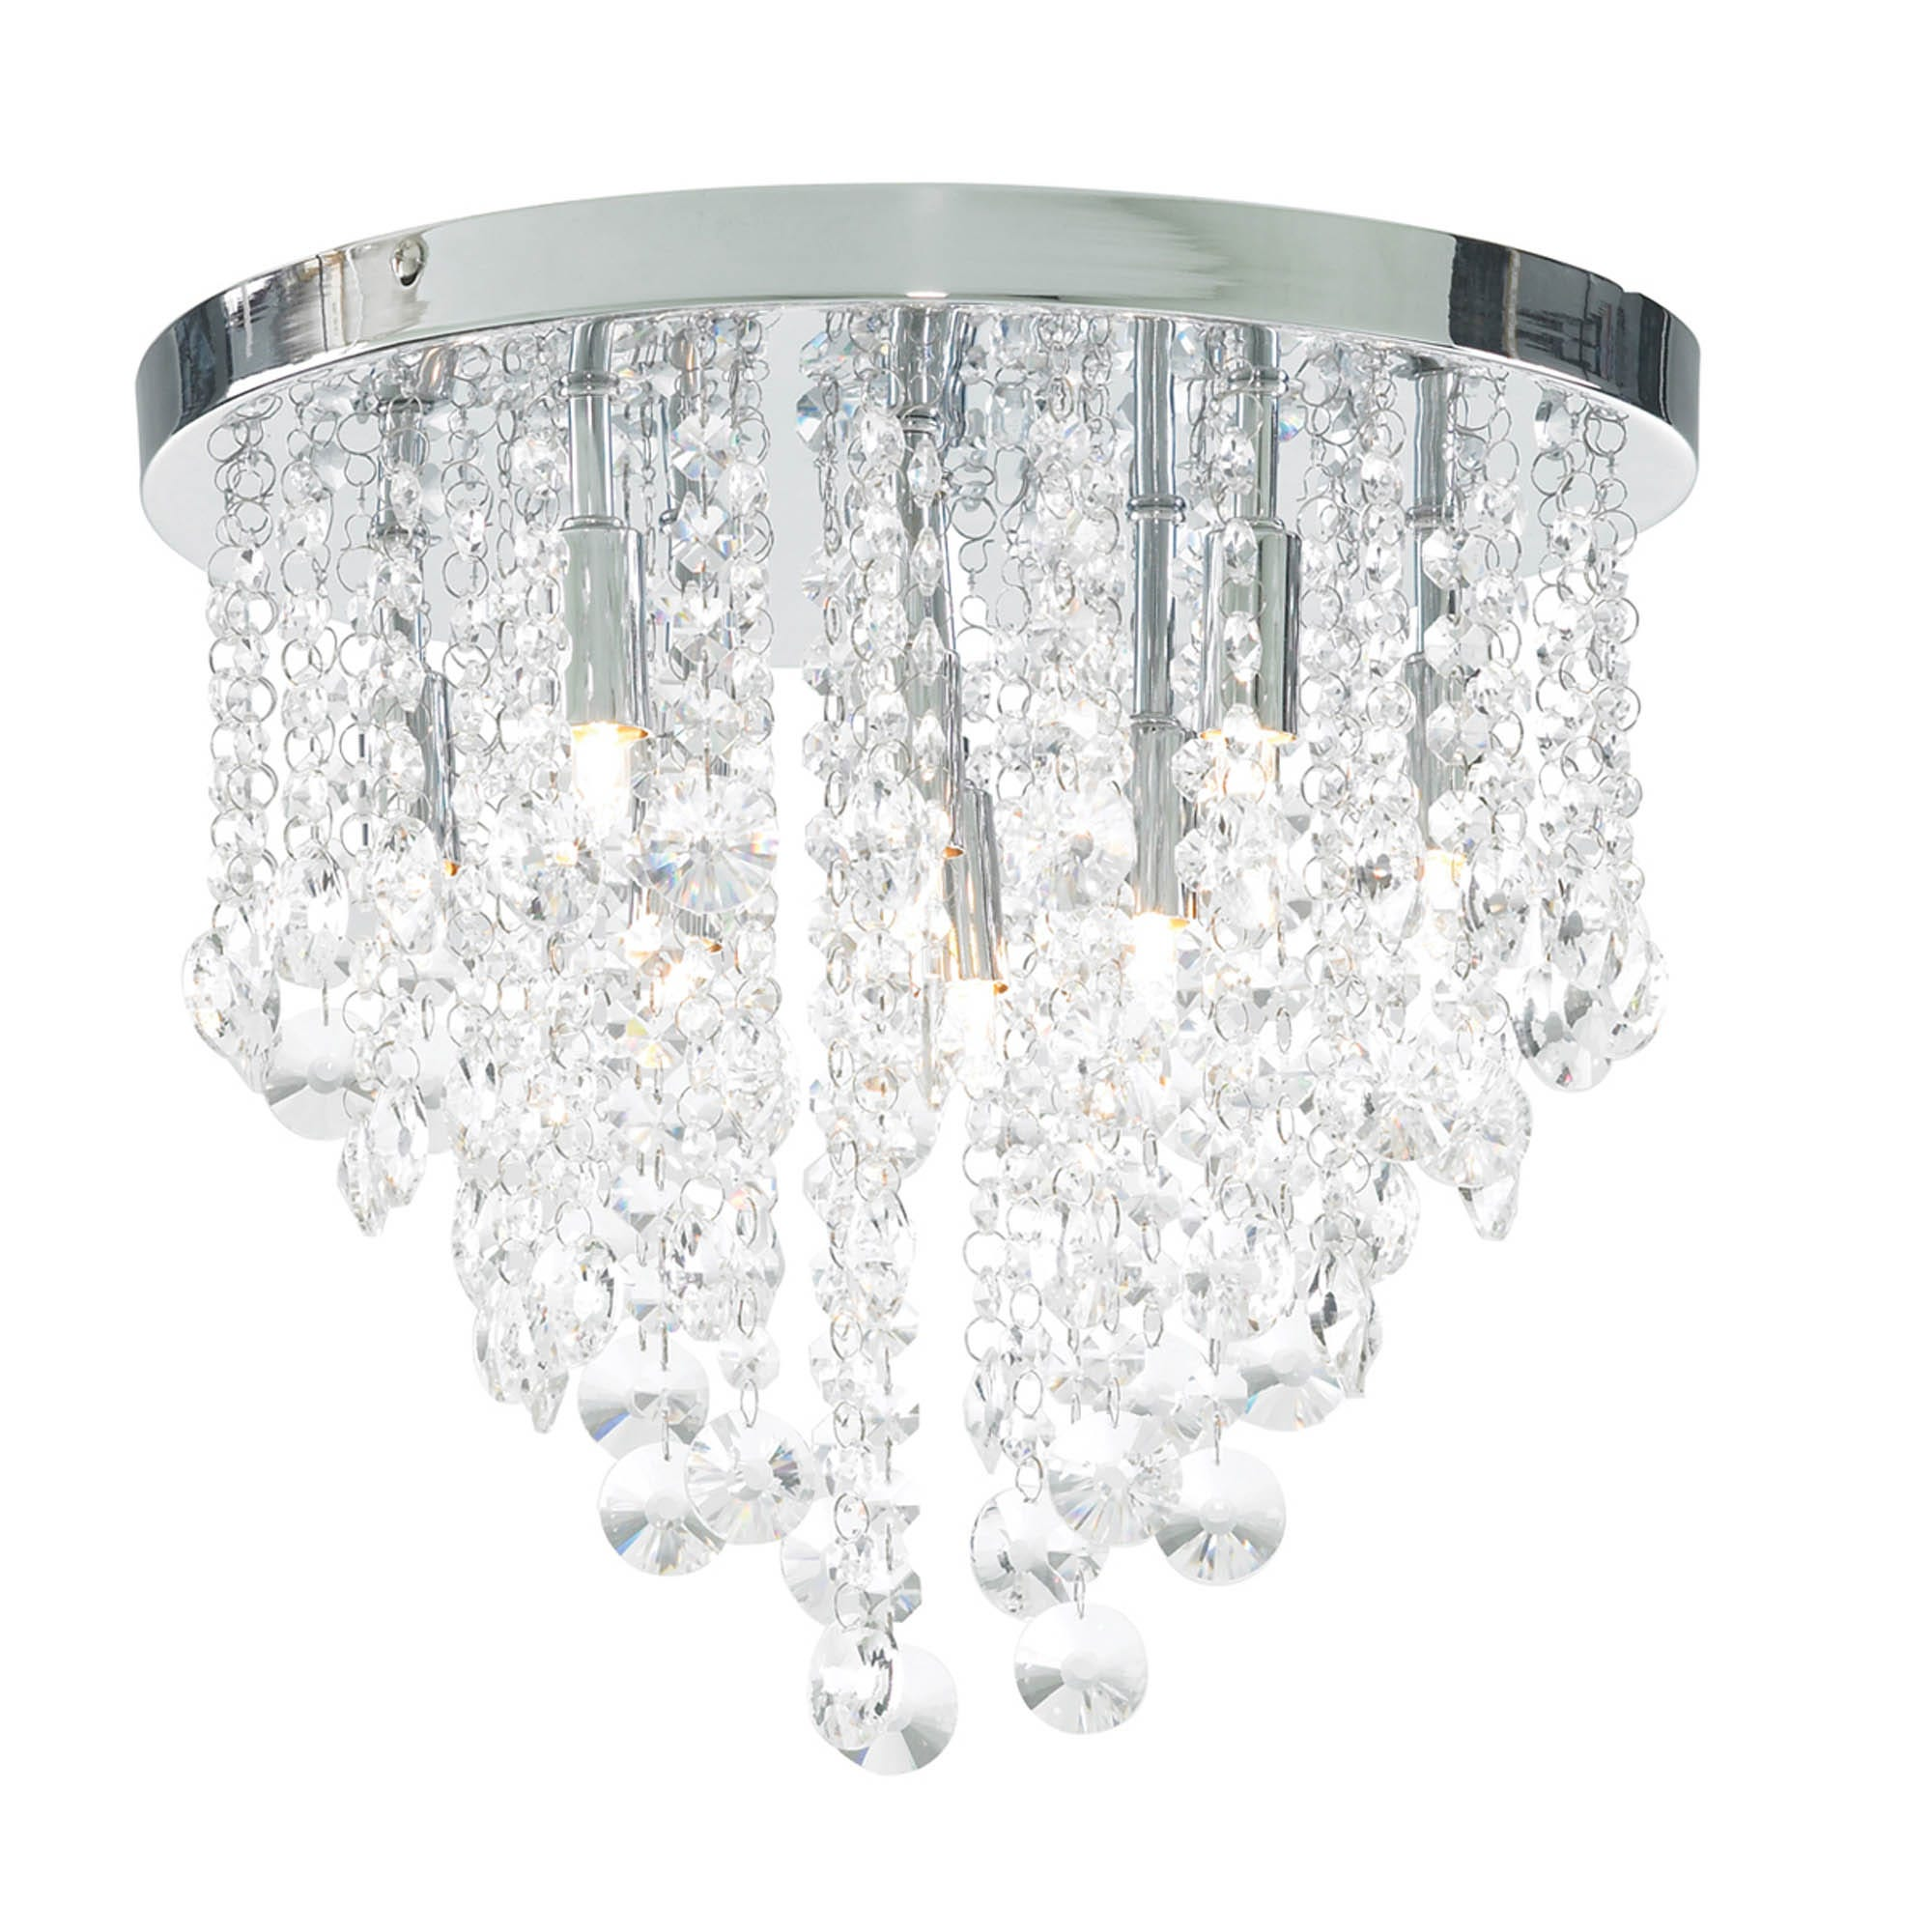 Image of Diego 9Lt Chrome Ceiling Light